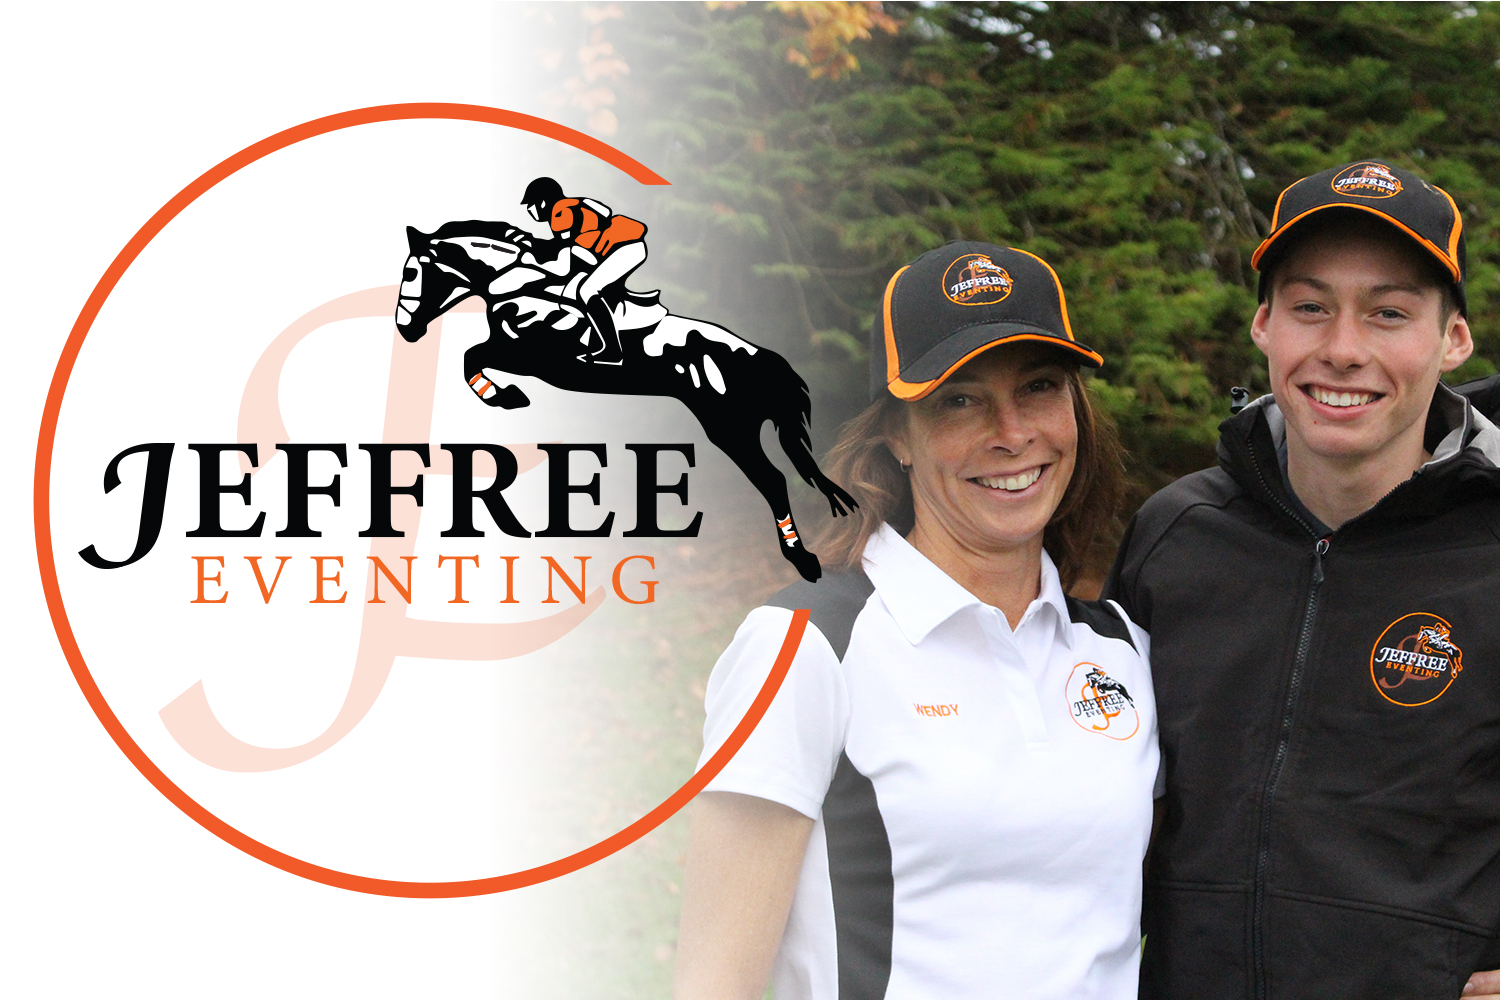 Sam and Wendy Jeffree – Jeffree Eventing